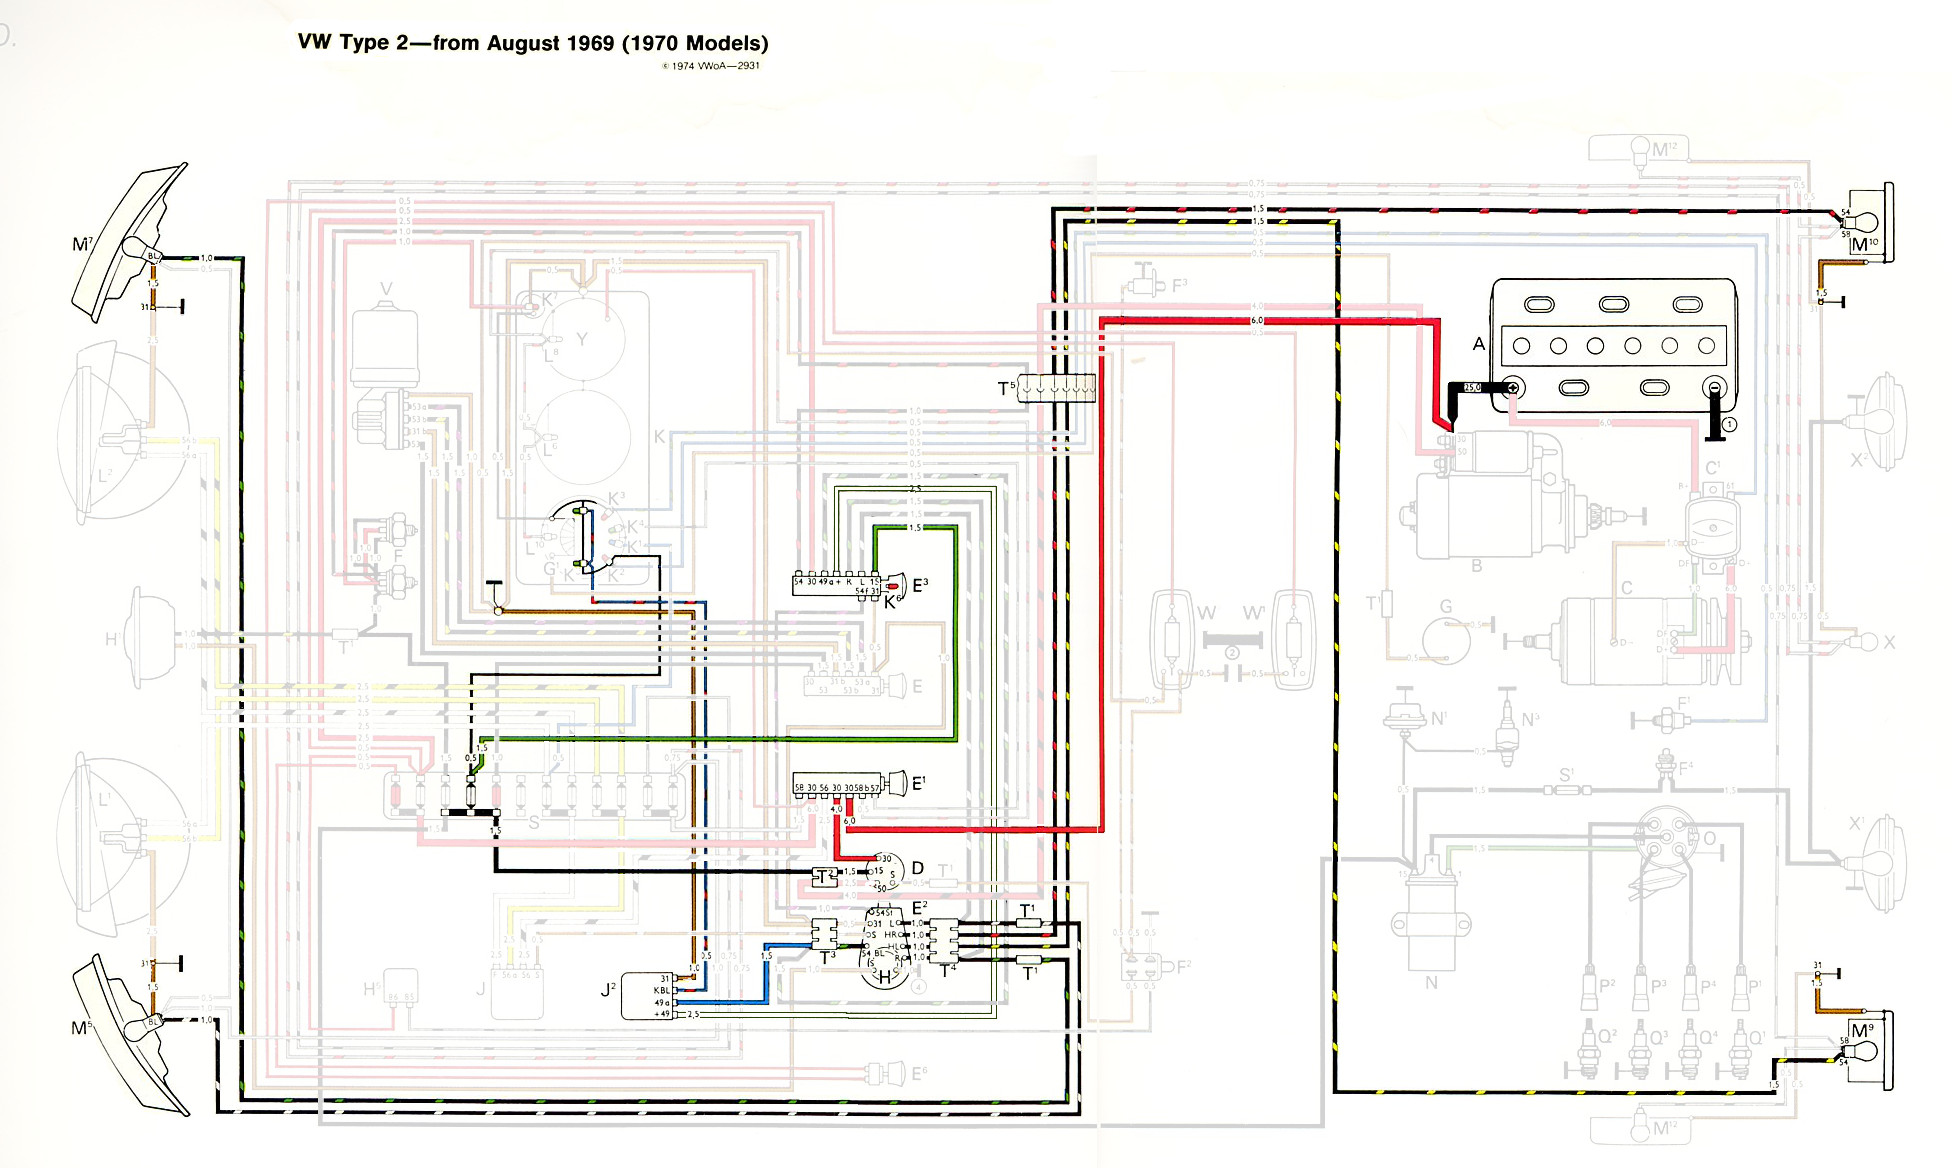 1970bus_signals thesamba com type 2 wiring diagrams vw sand rail wiring diagram at cos-gaming.co